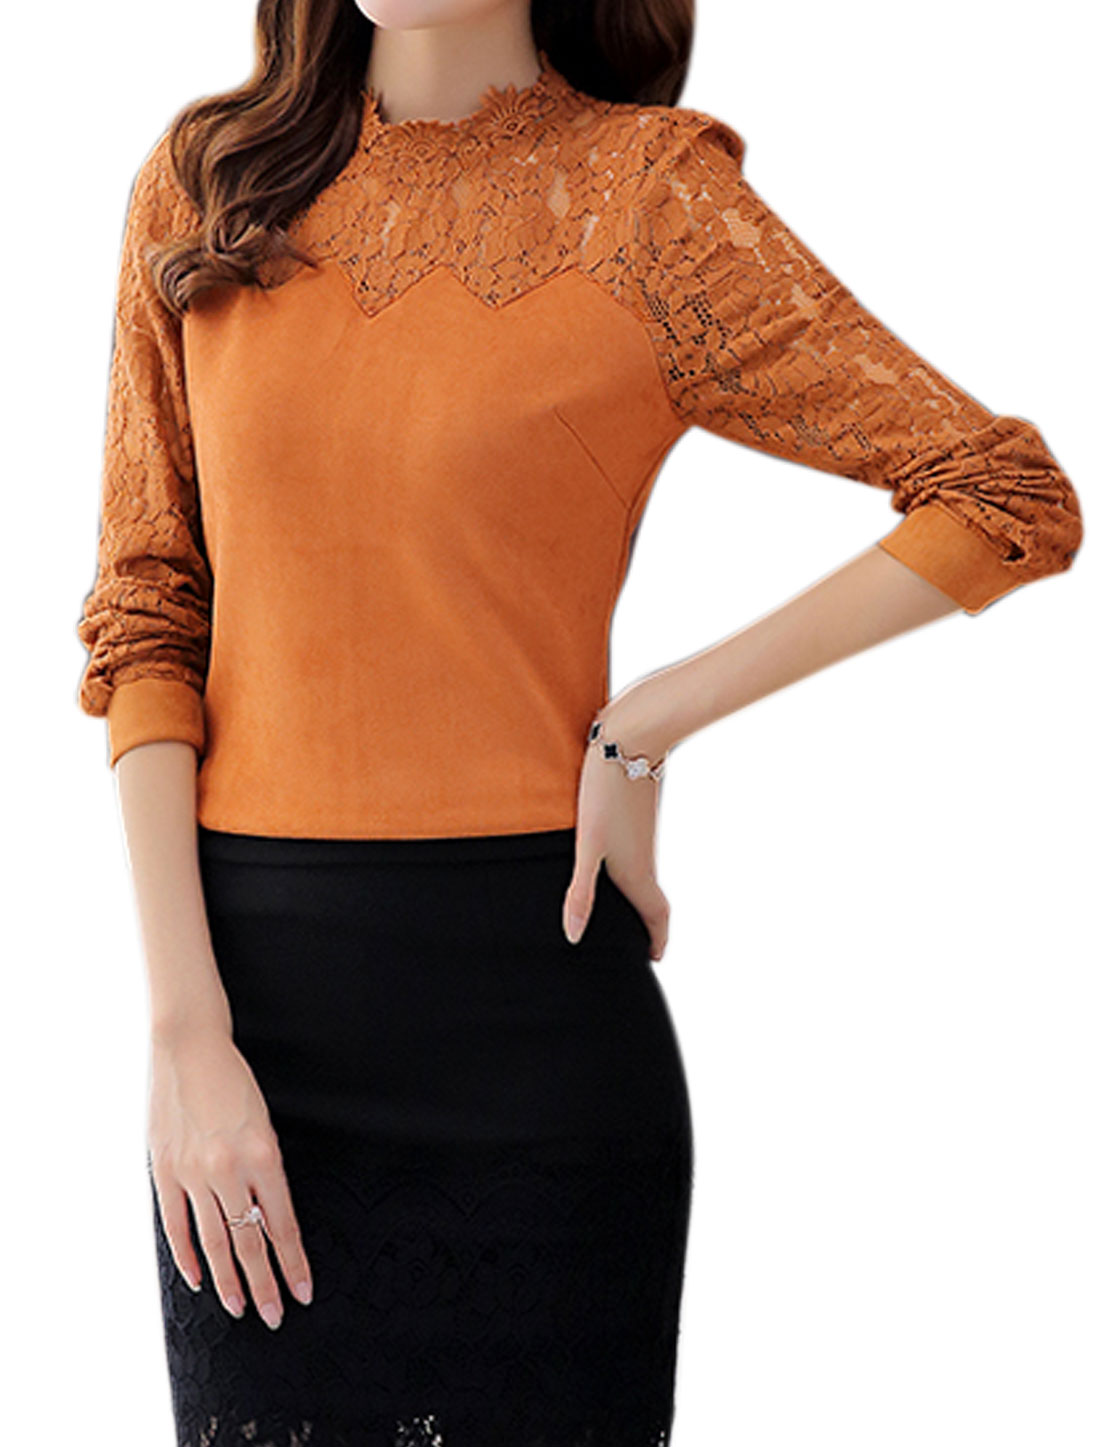 Lady Stand Collar Long-sleeved Lace Panel Pullover Slim Fit Top Brown S